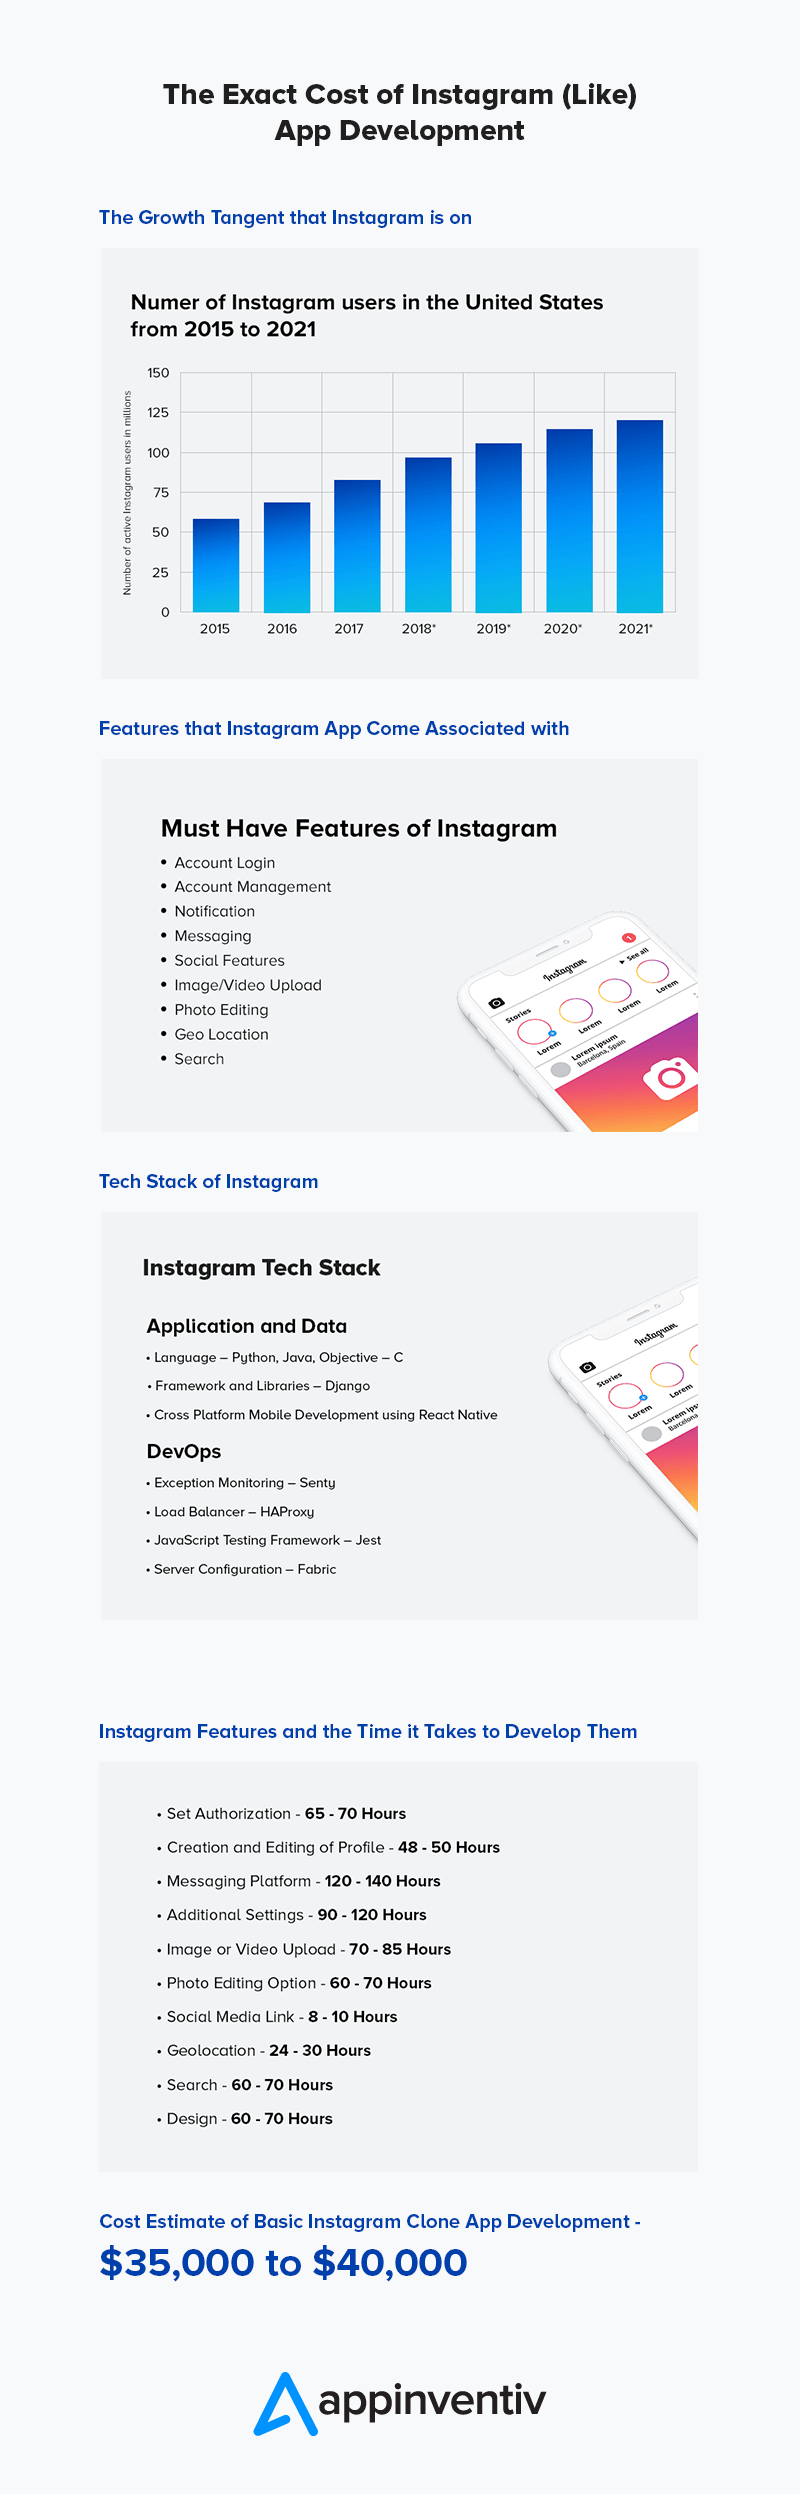 How much does it Cost to Develop Instagram like App